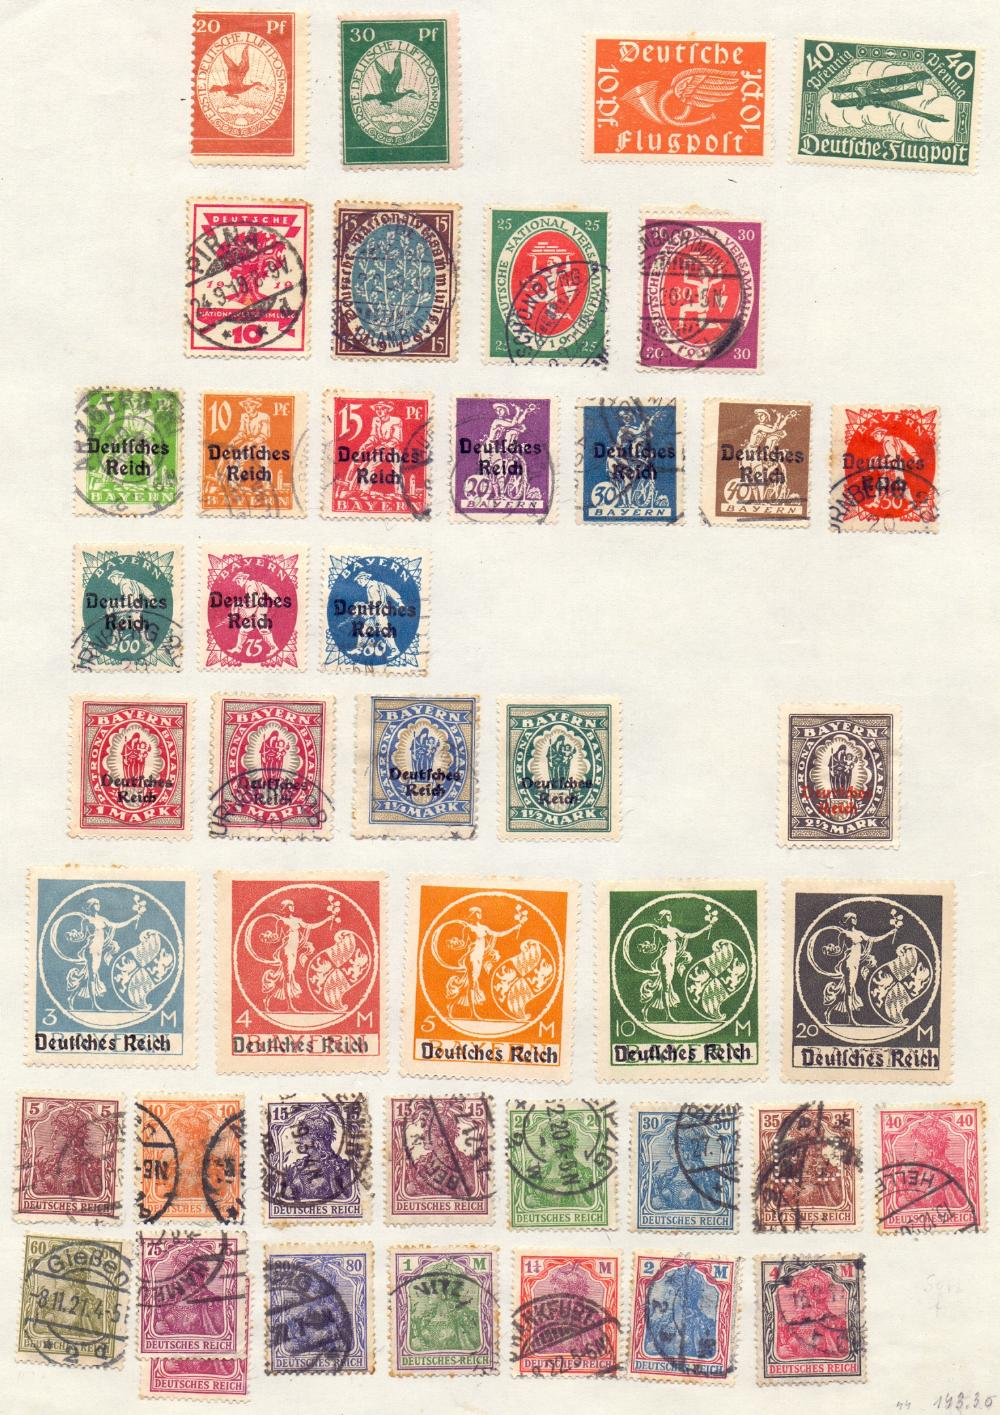 Lot 21 - STAMPS : WORLD, collection on pages with strength in Germany & territories, also useful Spain,